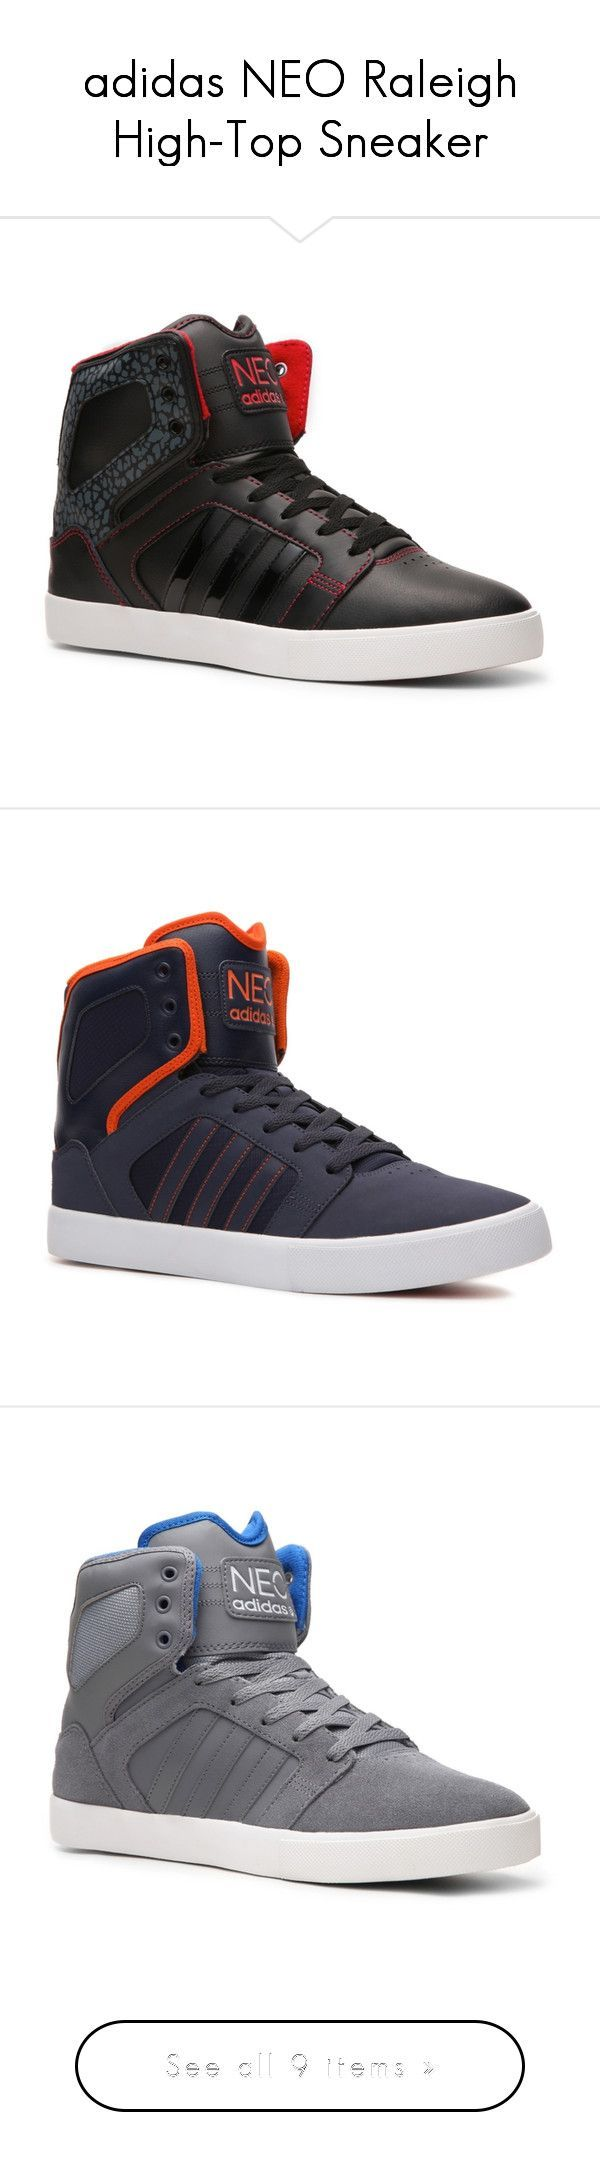 """""""adidas NEO Raleigh High-Top Sneaker"""" by rachkinou ❤ liked on Polyvore featuring shoes, sneakers, men, mens shoes, tenis, adidas shoes, high top trainers, adidas high tops, high top shoes and adidas - mens white shoes, buy shoes mens, mens tennis shoes"""